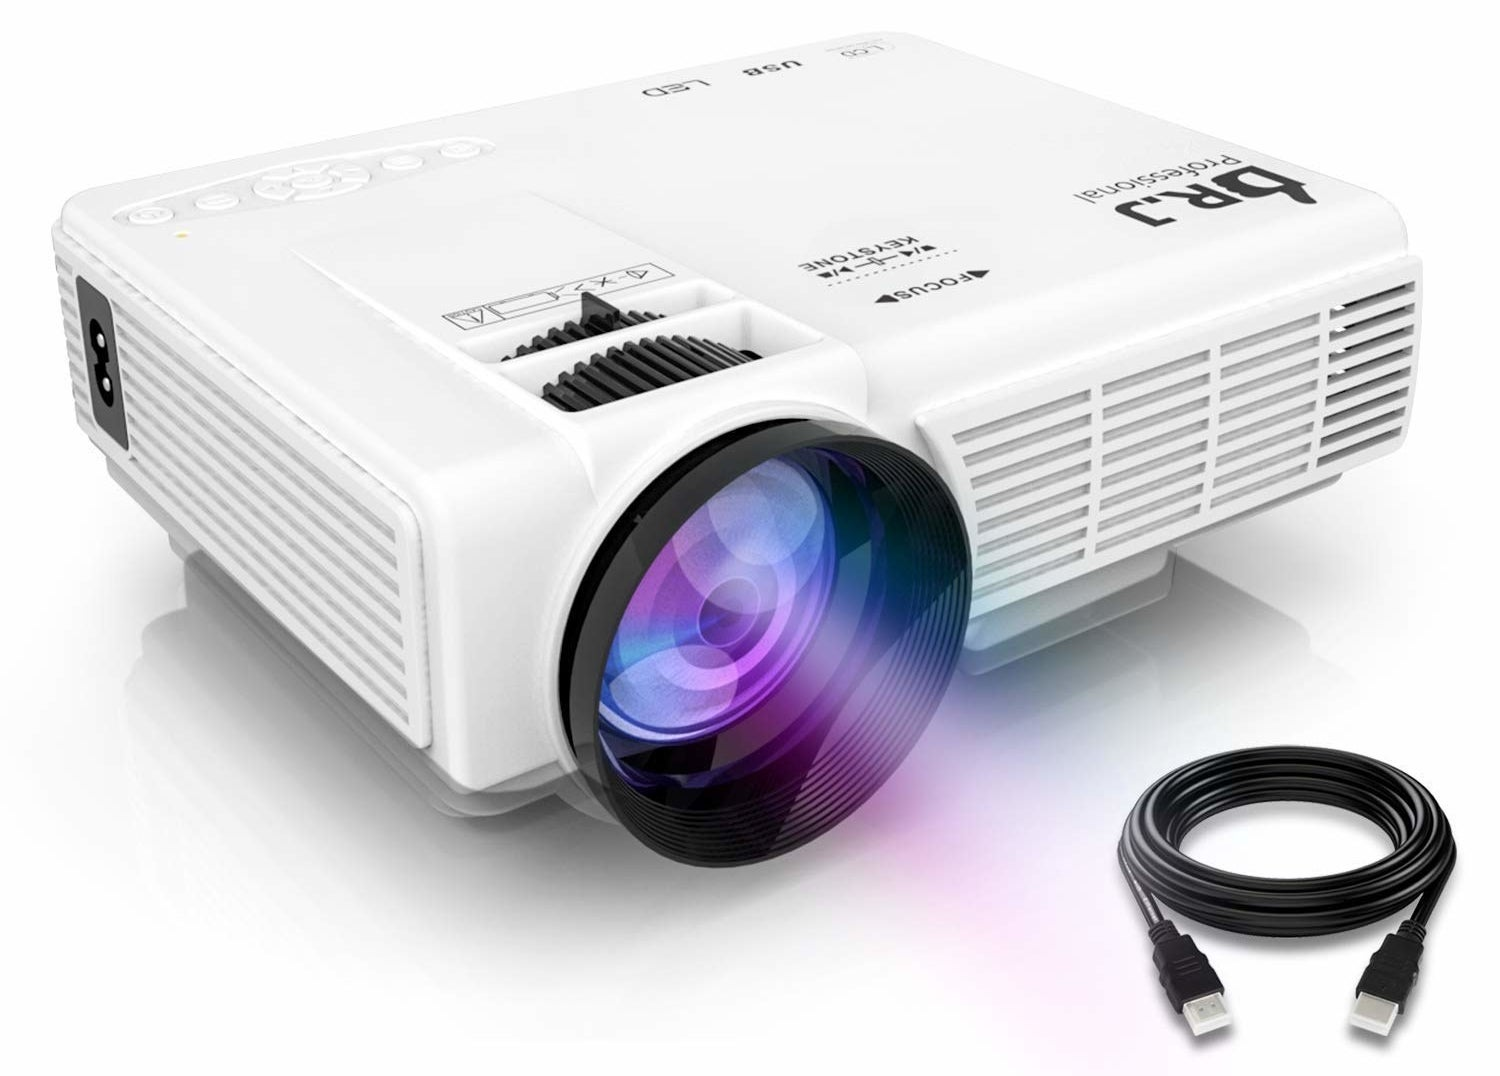 """Get it from Amazon for $89.99.Promising review: """"Very happy with this projector. Even though the dimensions are listed, I was still a bit surprised a how small the unit actually is. Even with the projector 15 feet away from the screen it is quite bright, certainly bright enough for a movie outdoors, which is what we bought it for to begin with. I was also pleased to find out I can plug my Roku Streaming Stick+ directly into the HDMI and USB port which made for a very small footprint of stuff I need to bring outdoors to project a movie. All in all very happy with the performance and price of this unit."""" —Gary C."""